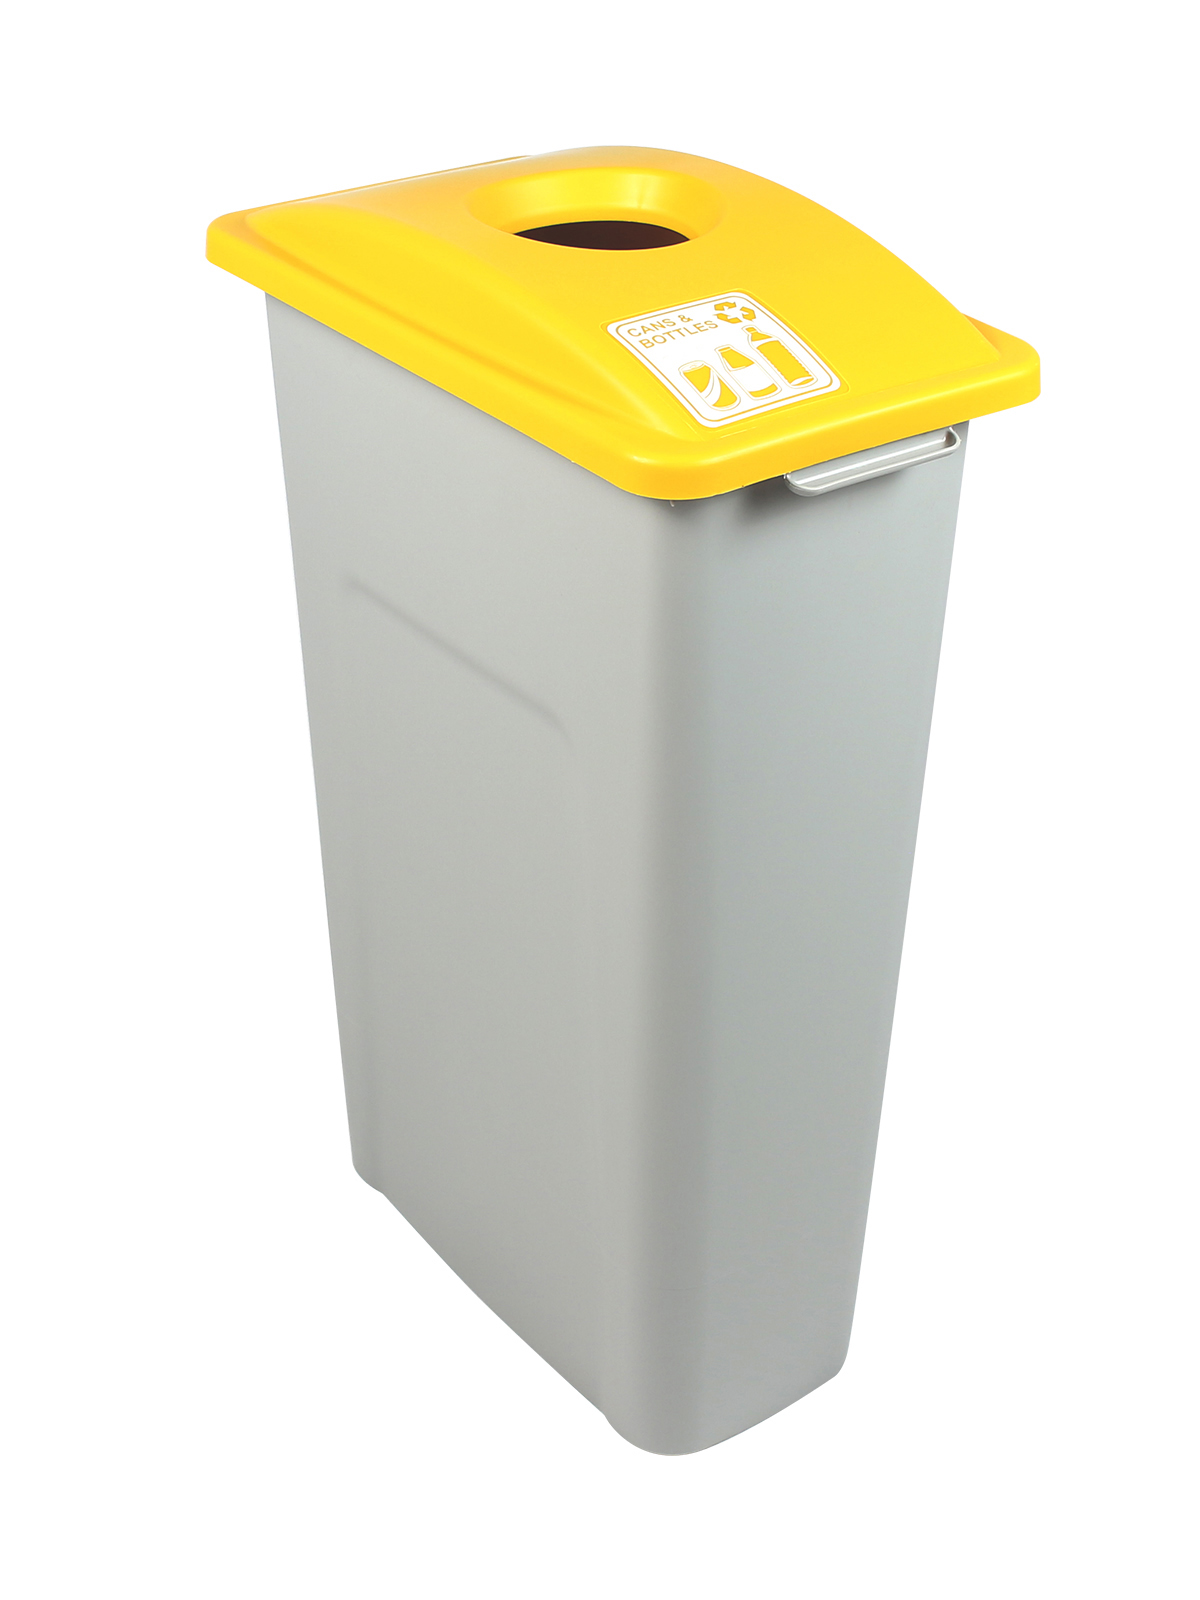 WASTE WATCHER - Single - Cans & Bottles - Circle - Grey-Yellow